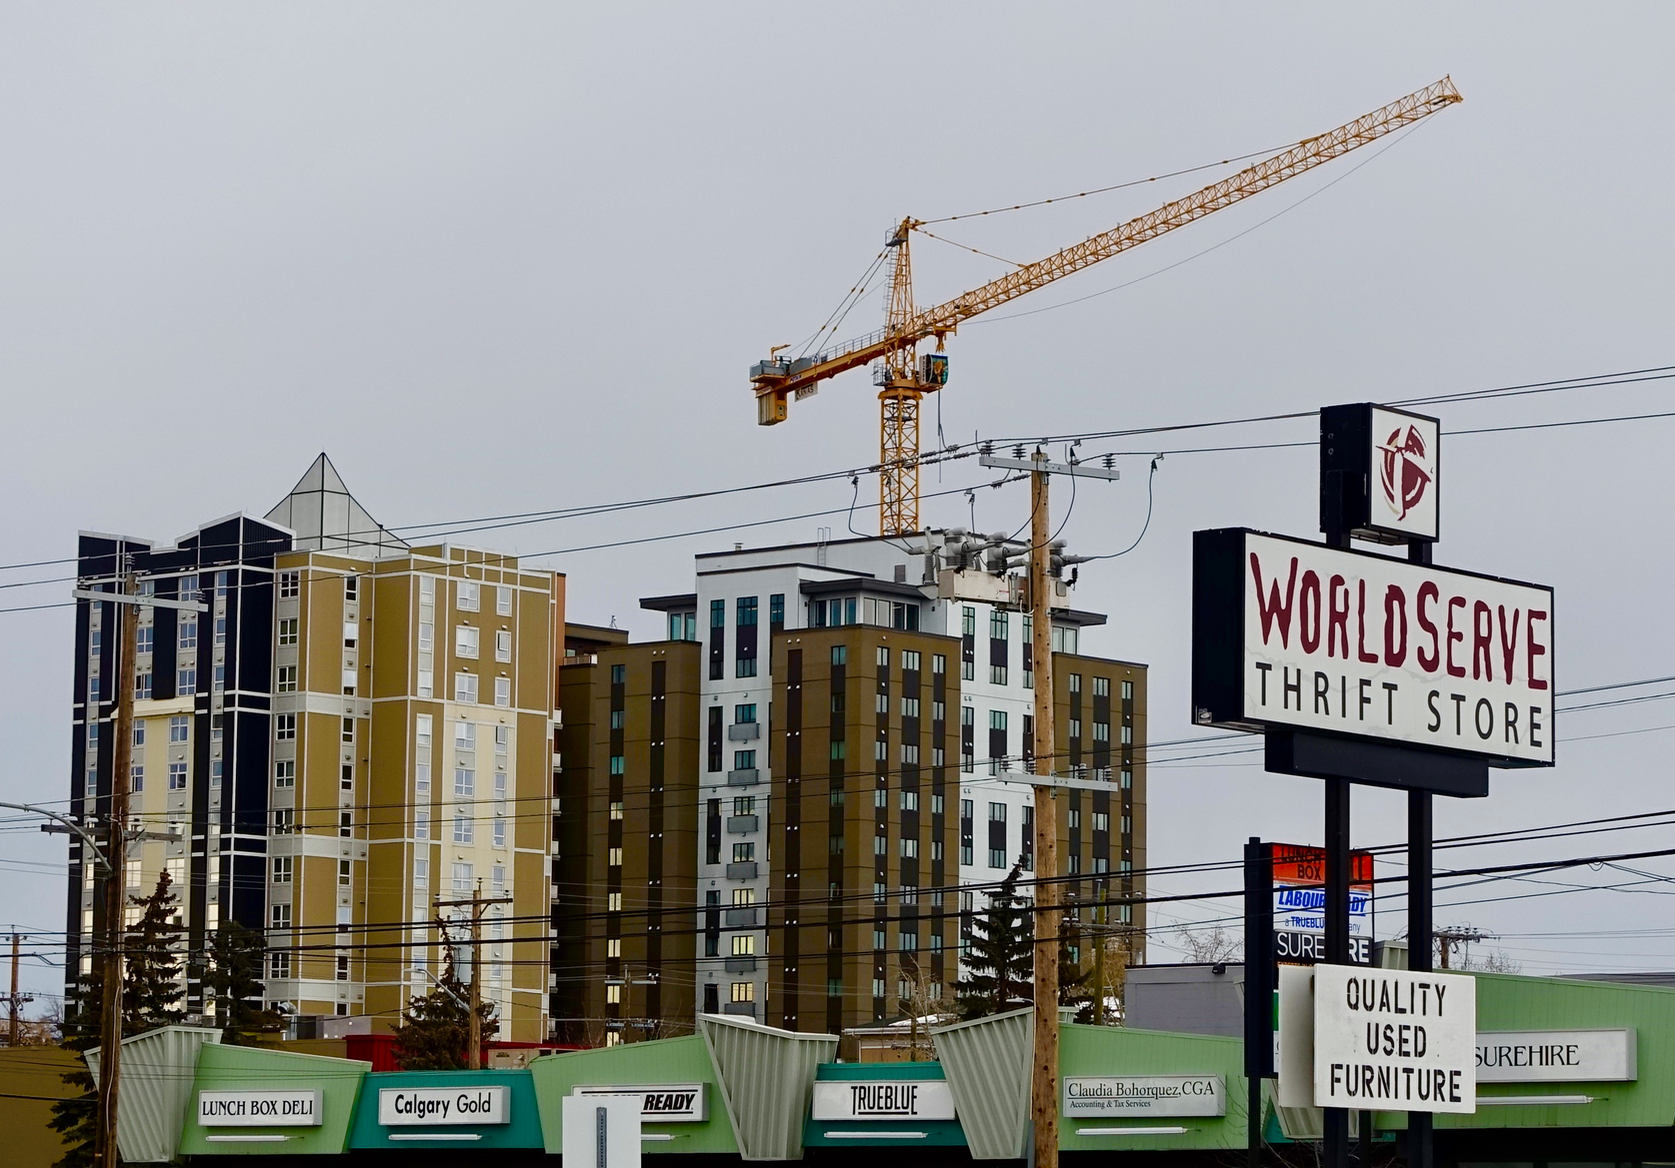 A cluster of mid-rise residential towers is developing at the southwest corner of Manchester.